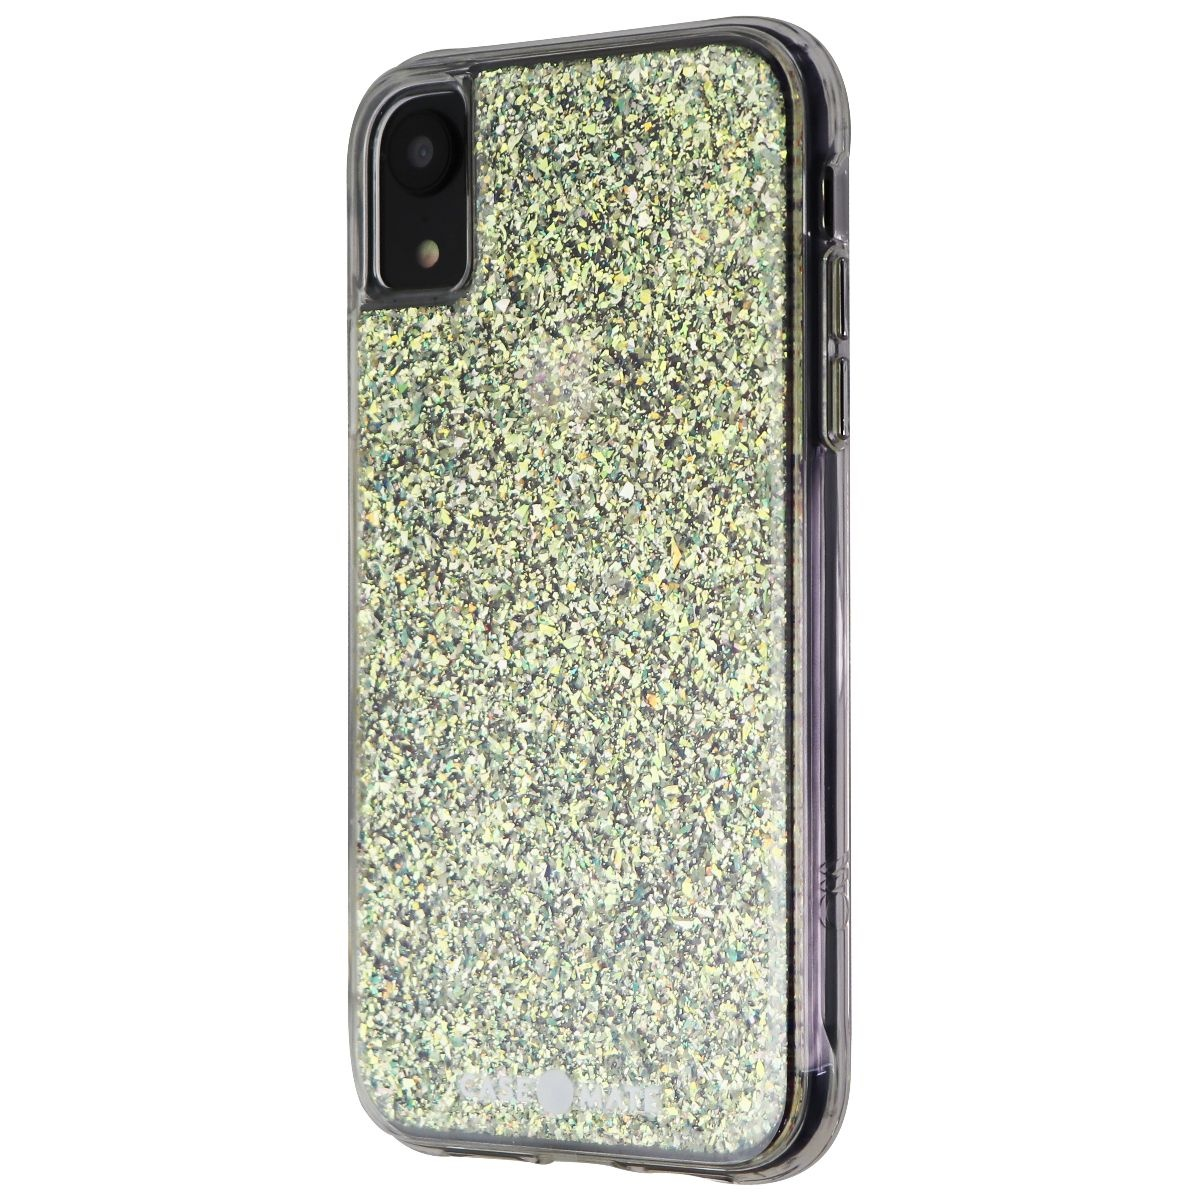 Case-Mate Twinkle Phone Case for iPhone XR (6.1 Inch) - Stardust